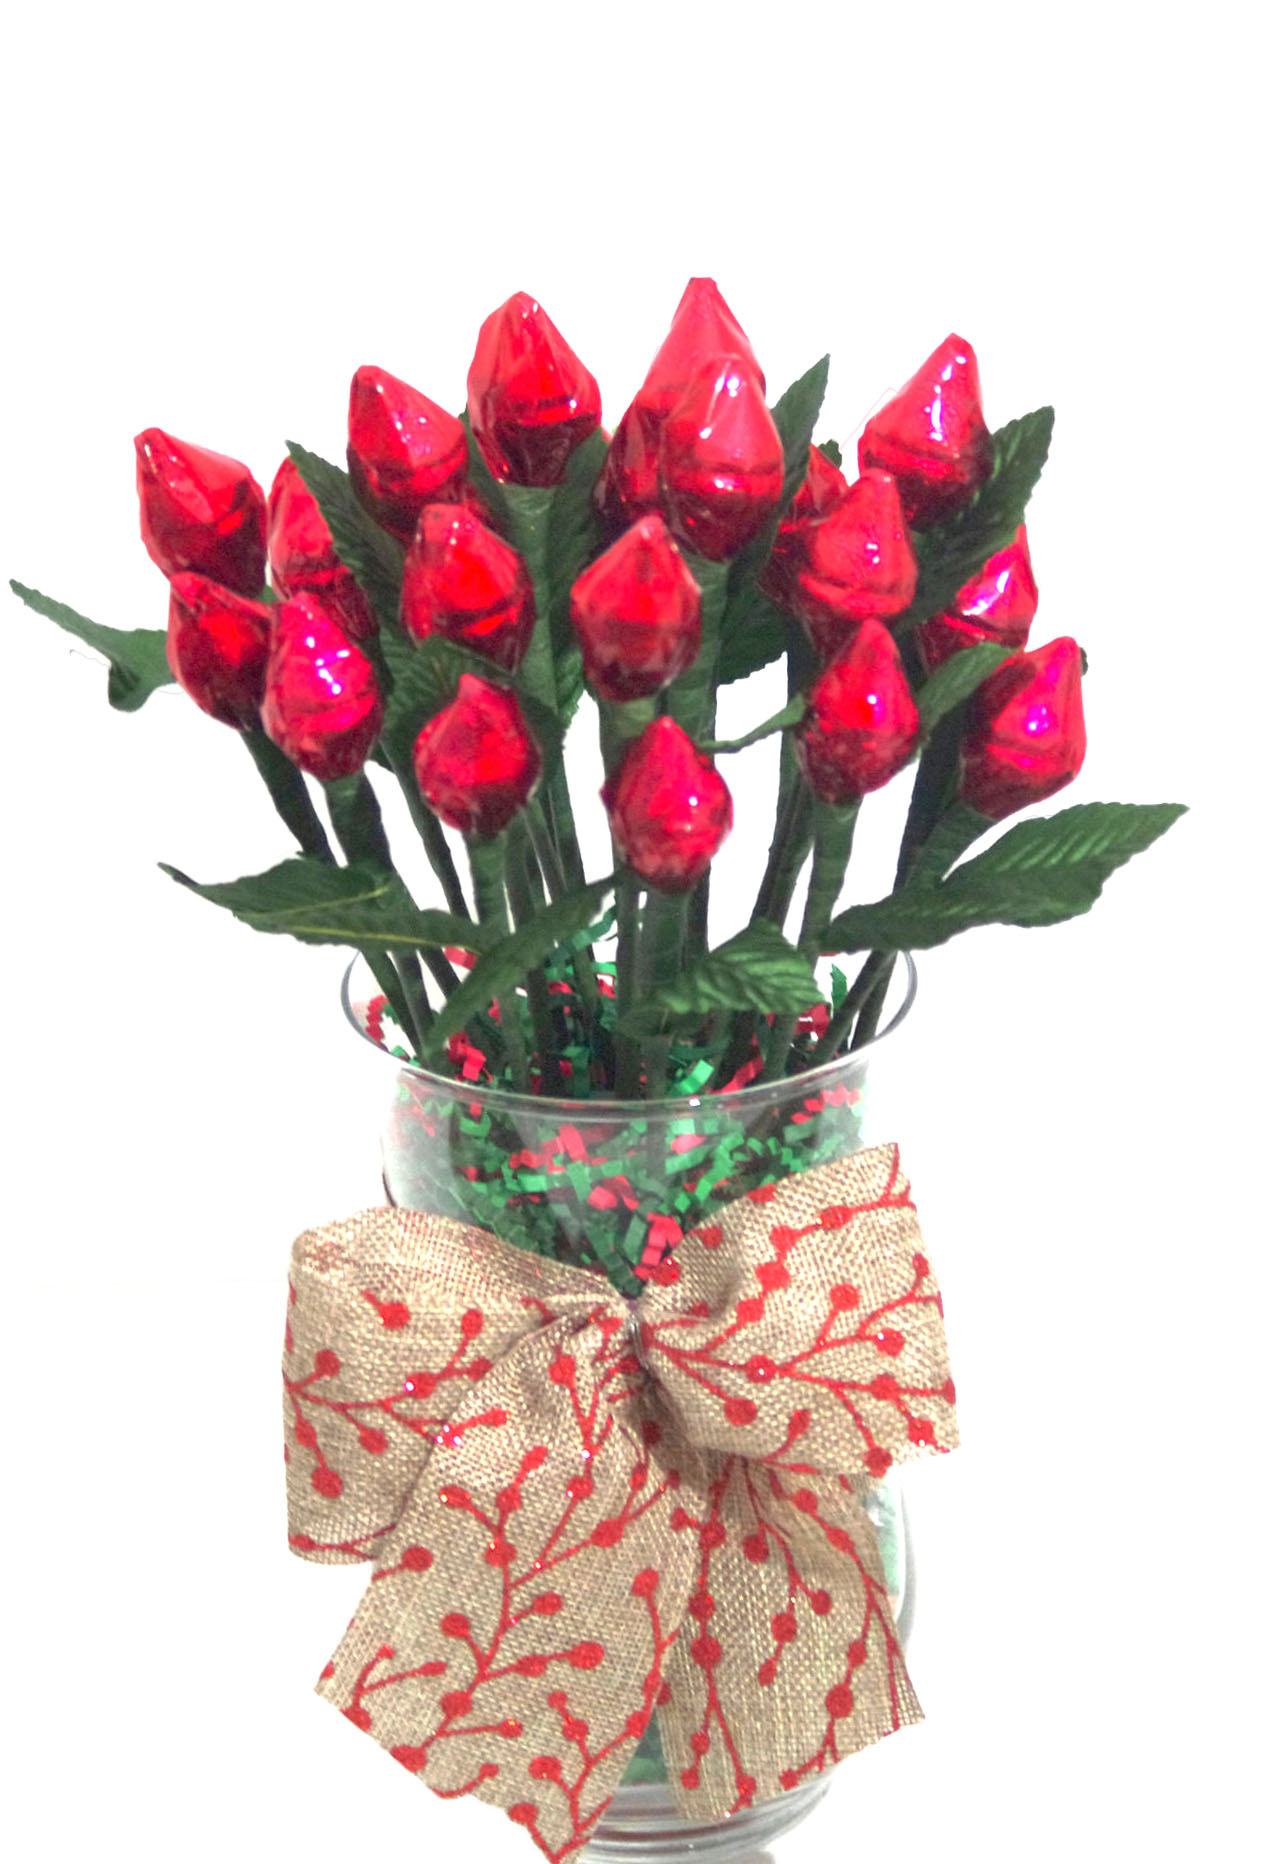 Unique Valentine's Day Gifts: Hershey's Kisses Rose Bouquet